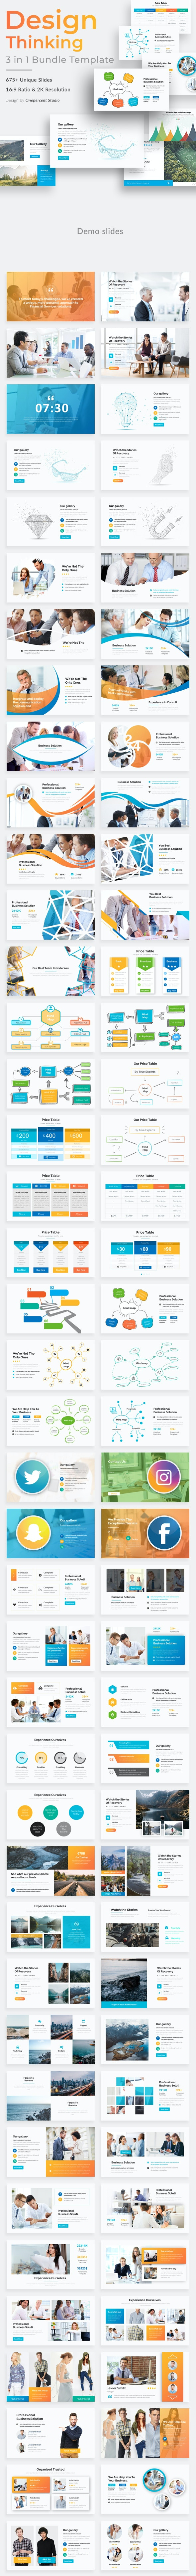 Design Thinking 3 in 1 Pitch Deck Bundle Powerpoint Template - Business PowerPoint Templates